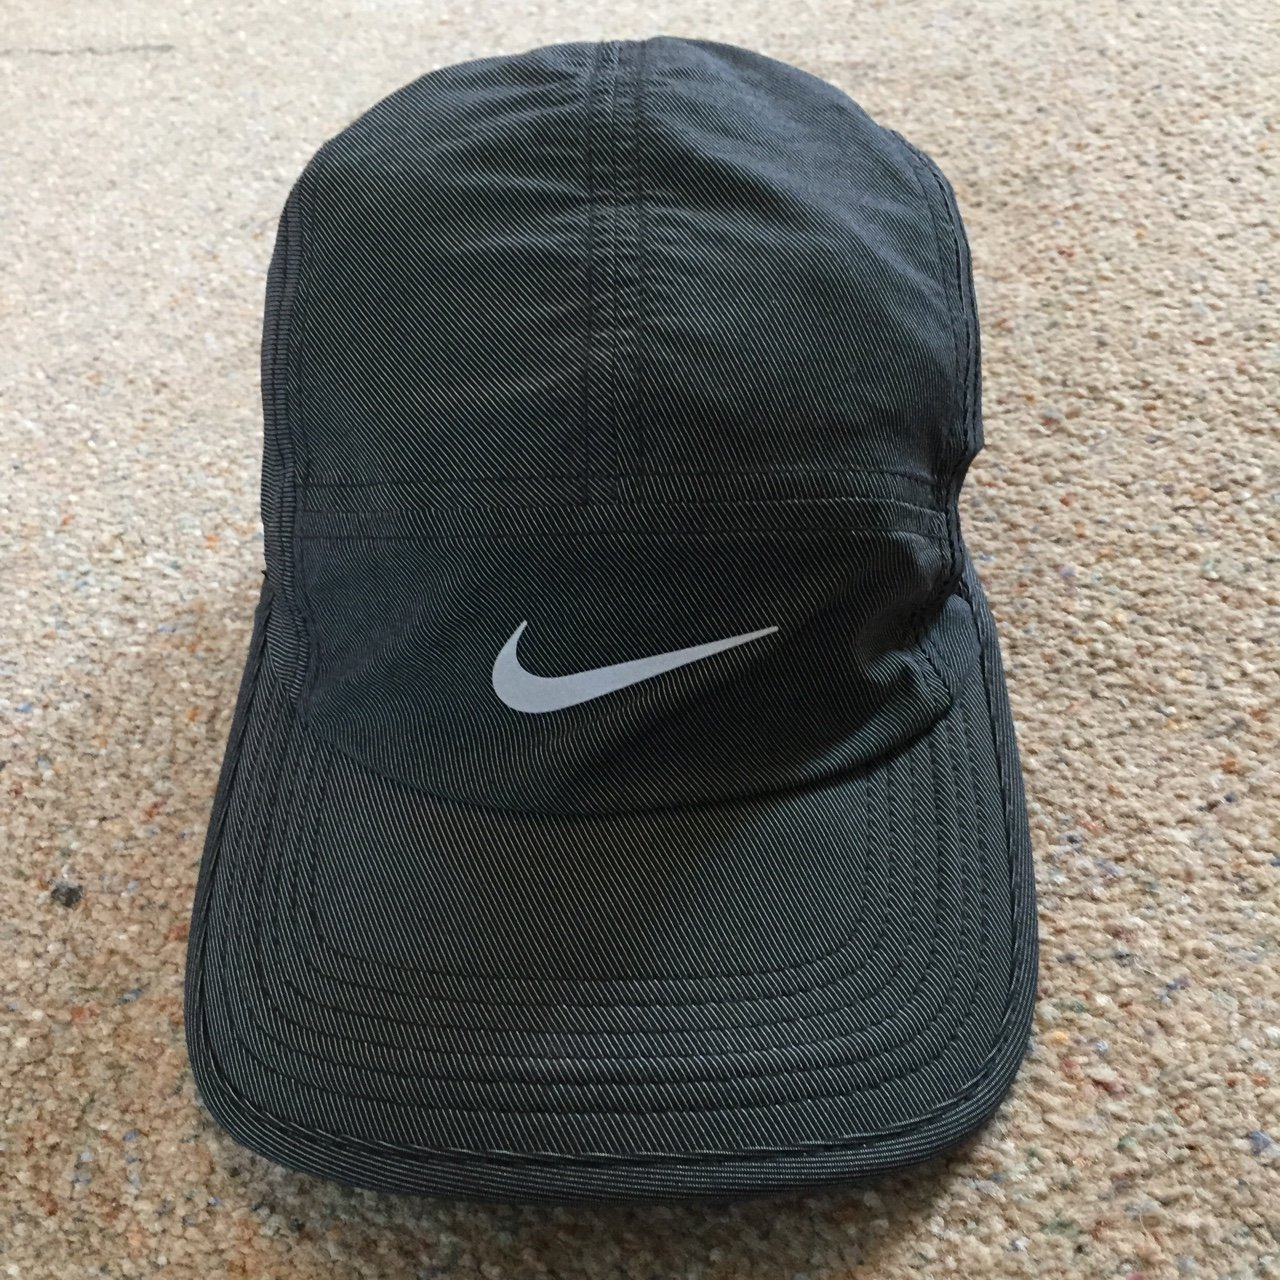 Excellent condition Mens 5 panel Nike hat. Adjustable strap 5cff0b7ac0e